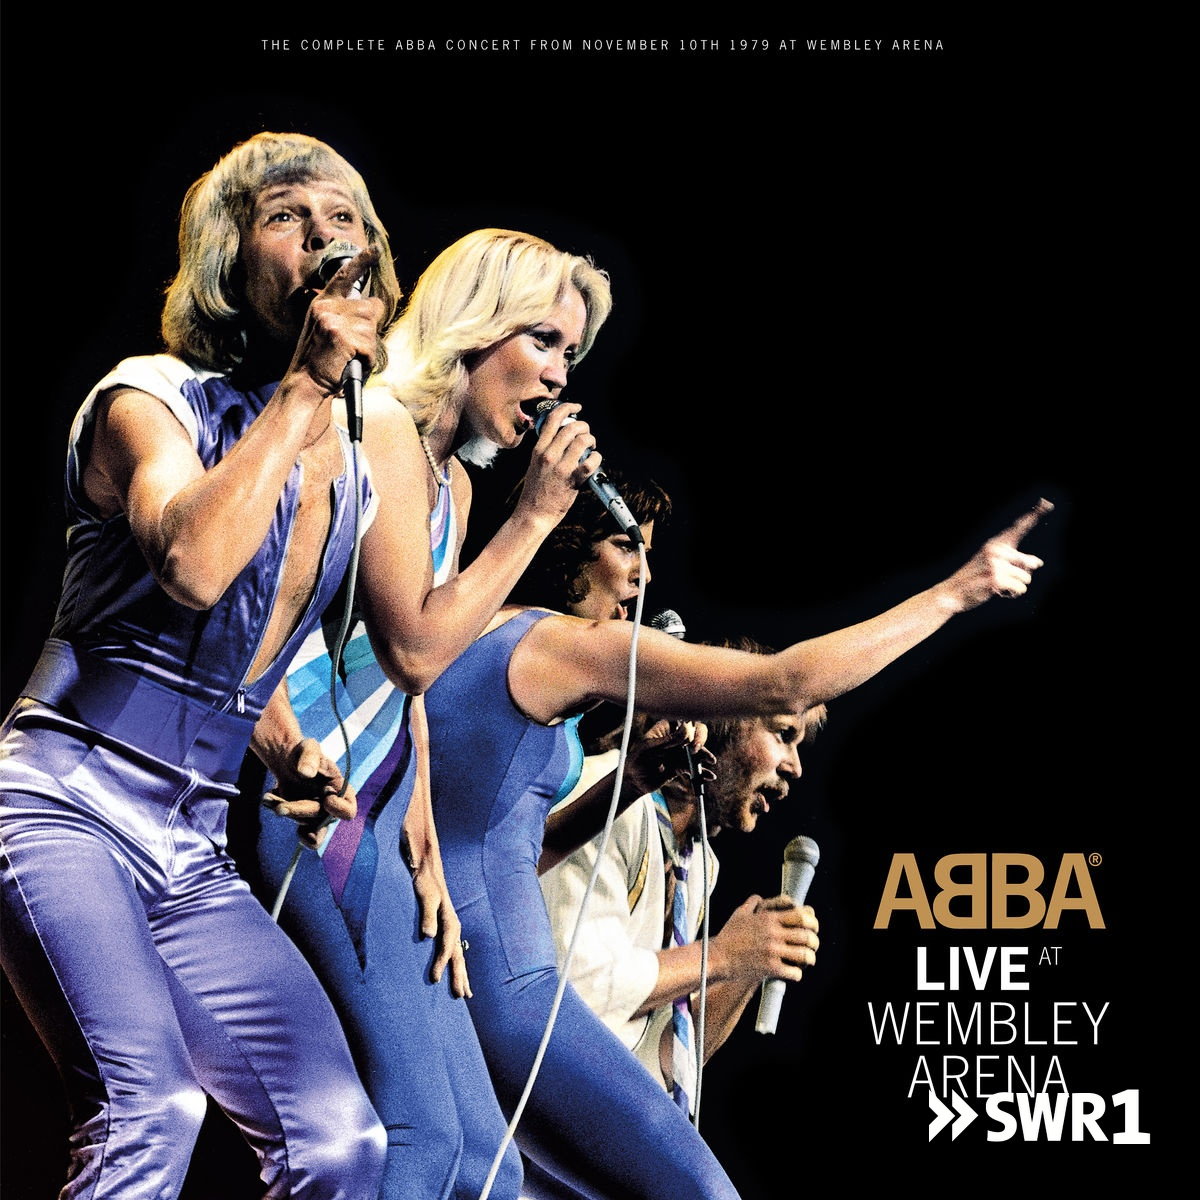 Knowing me, knowing you (Foto: Abba)